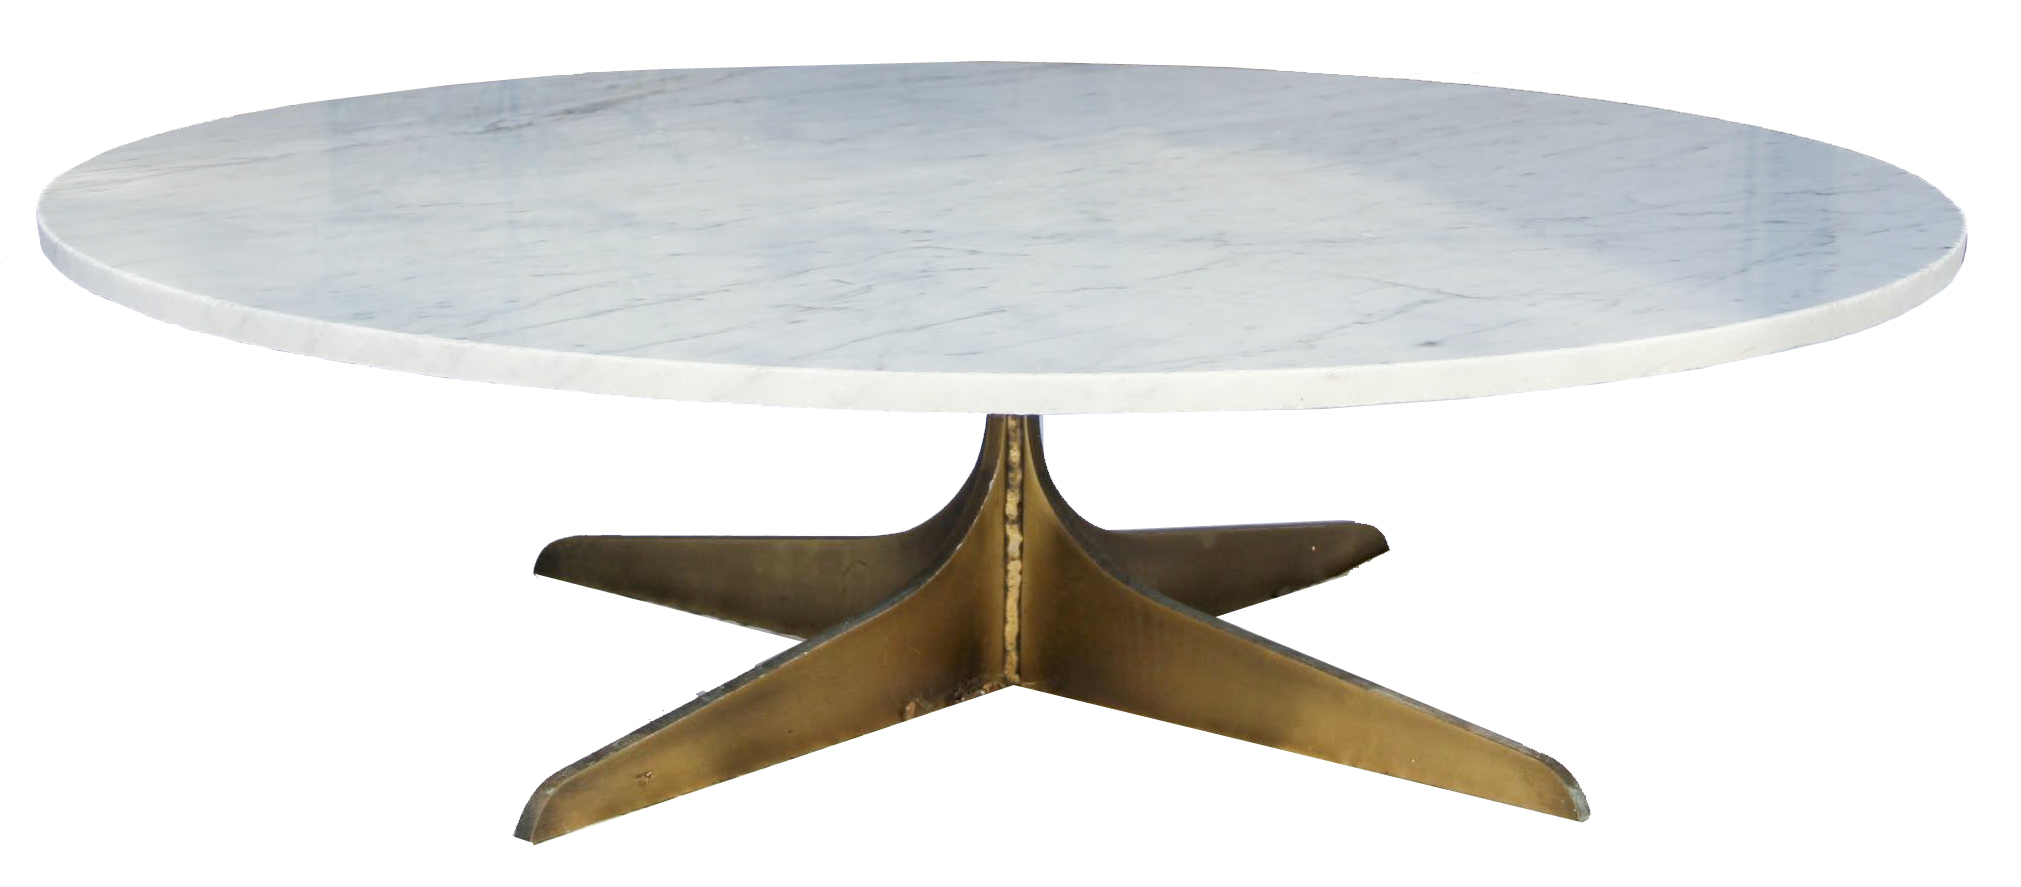 Round Marble Coffee Table With Solid Brass BaseChairish